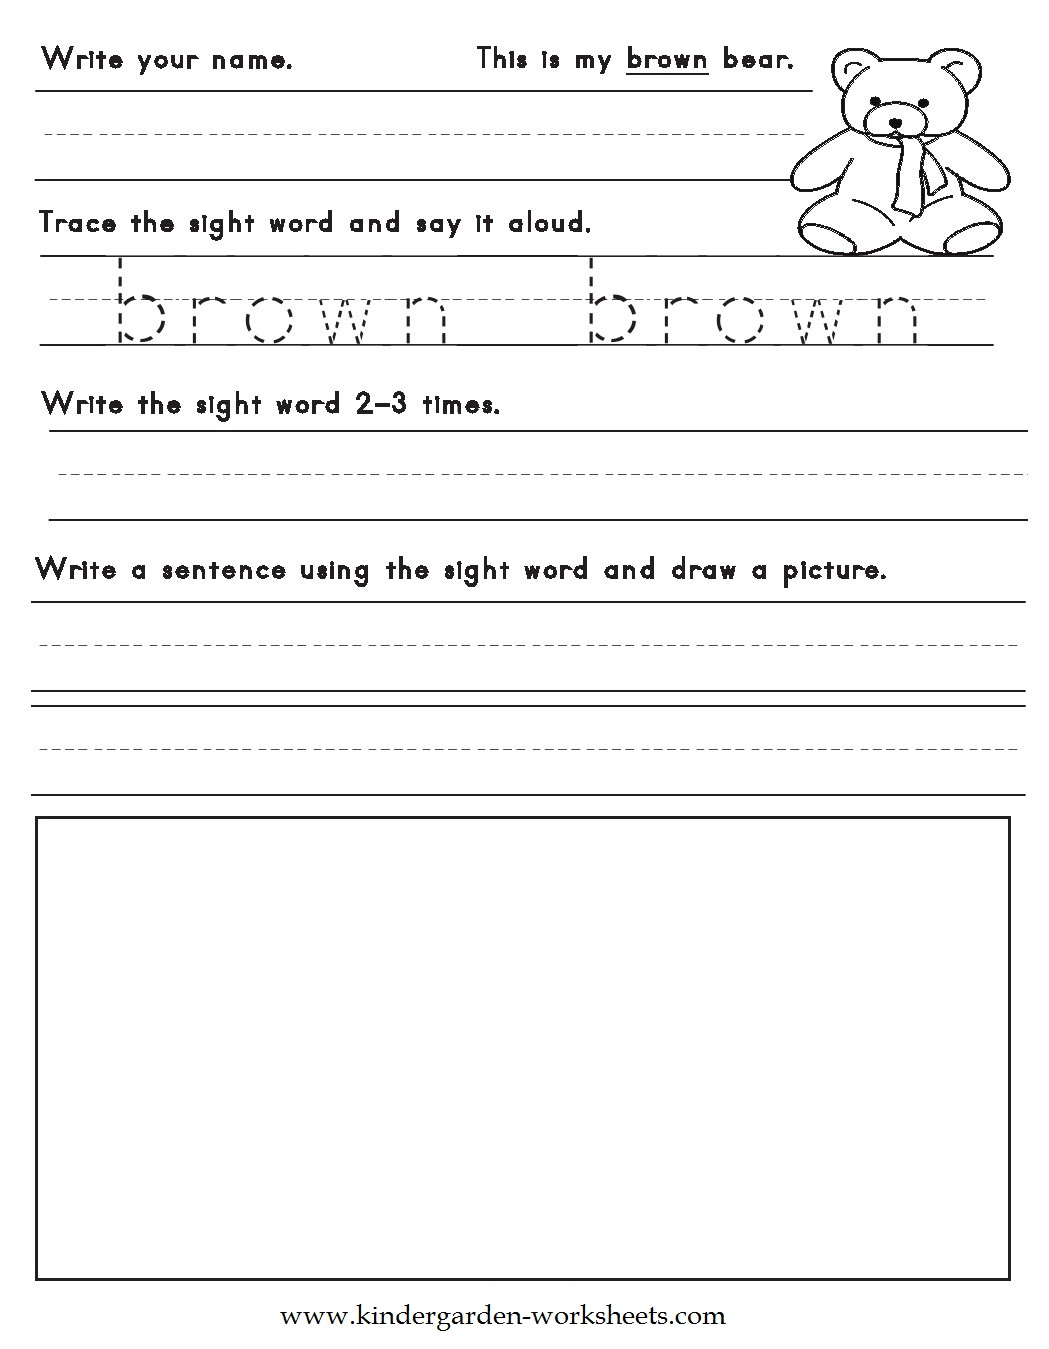 worksheet Color Brown Worksheets kindergarten worksheets color words brown black blue gr